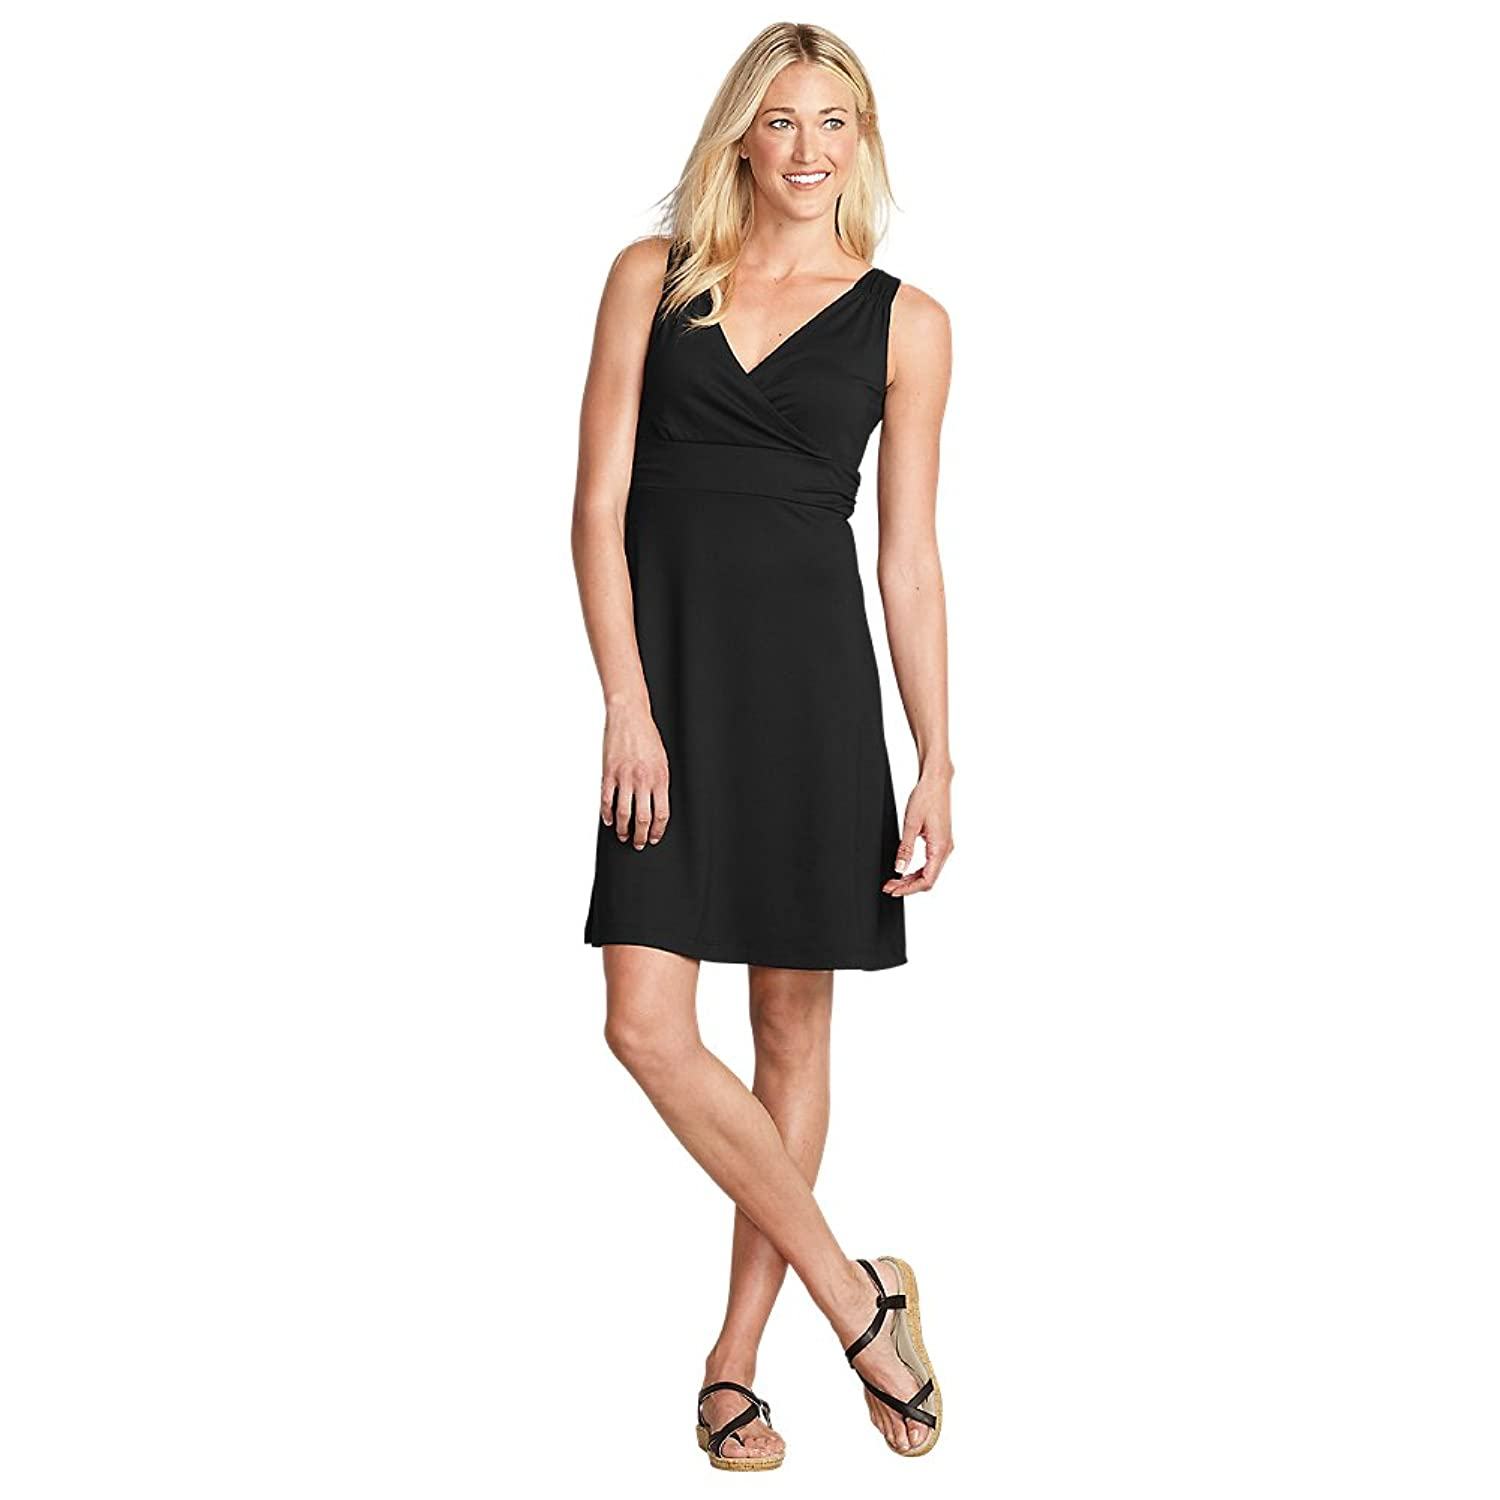 Eddie Bauer Black Dress